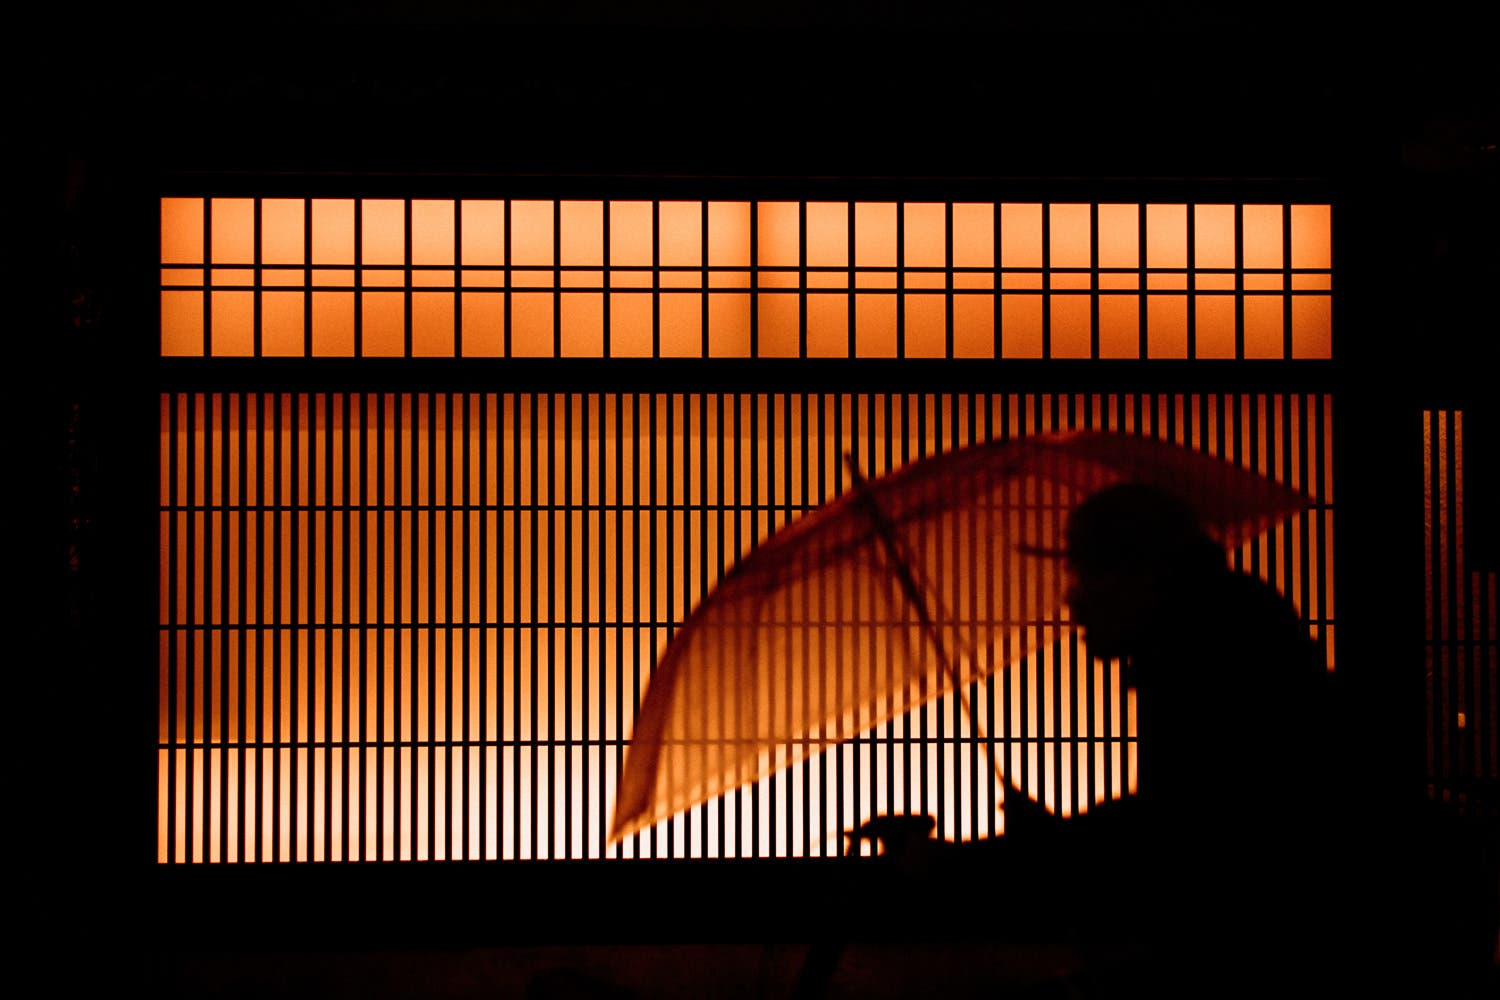 Justyna Zduńczyk Makes a Beautiful Visual Summary of Kyoto's Wonders